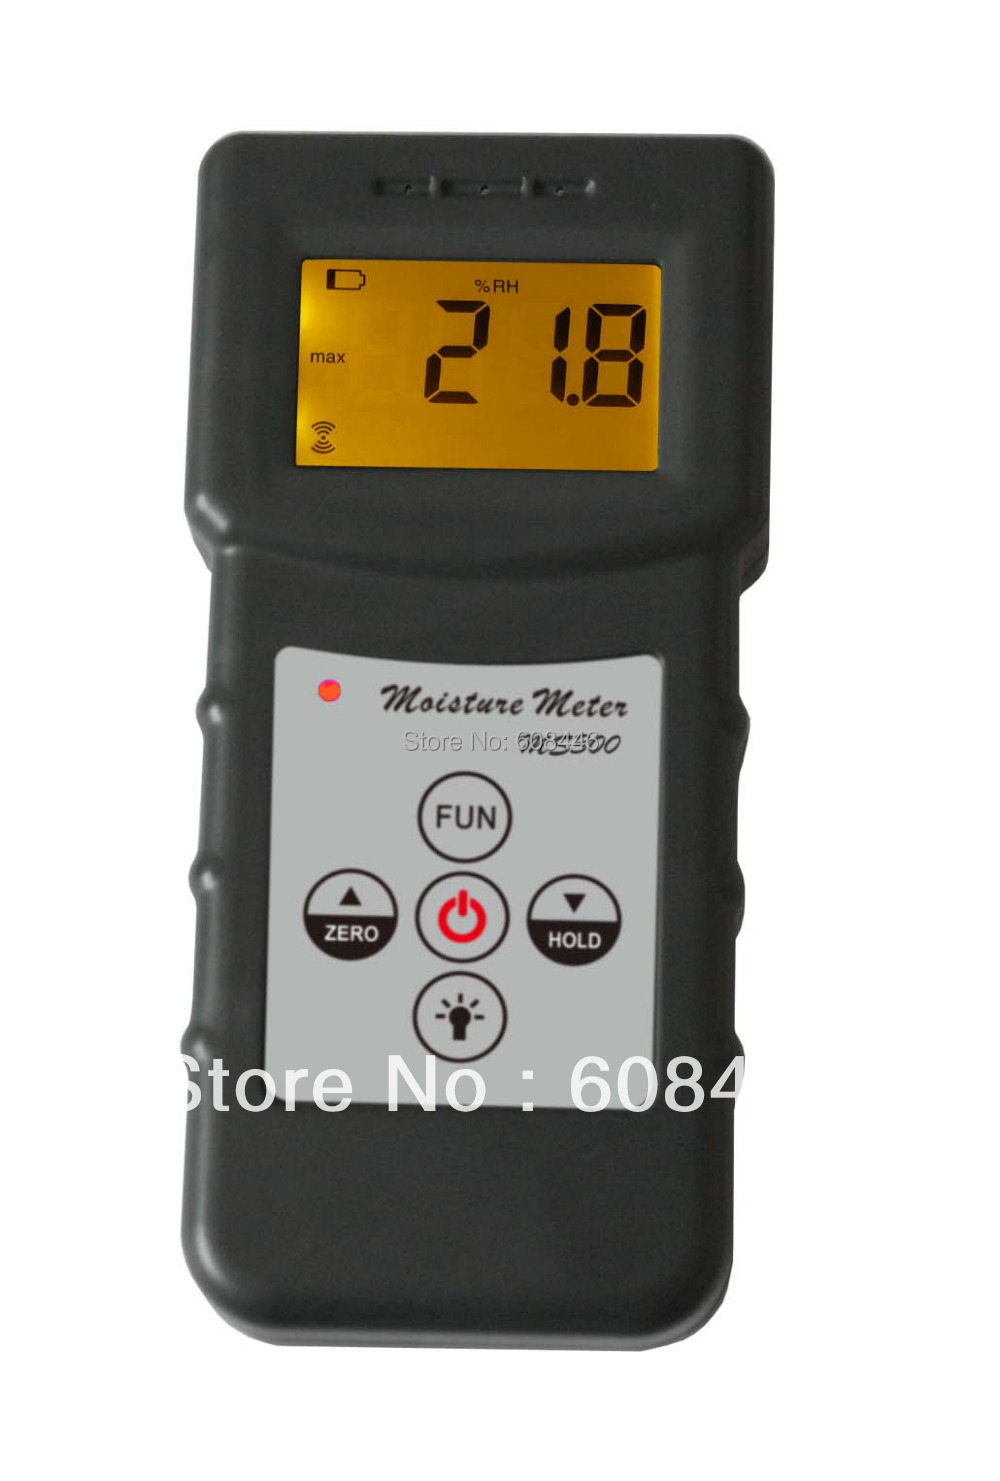 3 Pcs/Lot MS300 Inductive moisture meter measuring moisture content of wood,paper,Bamboo, concrete,metope,and other material fiber materials wooden articles tobacco cotton paper building soil and other fibre materials digital wood moisture meter mc7806